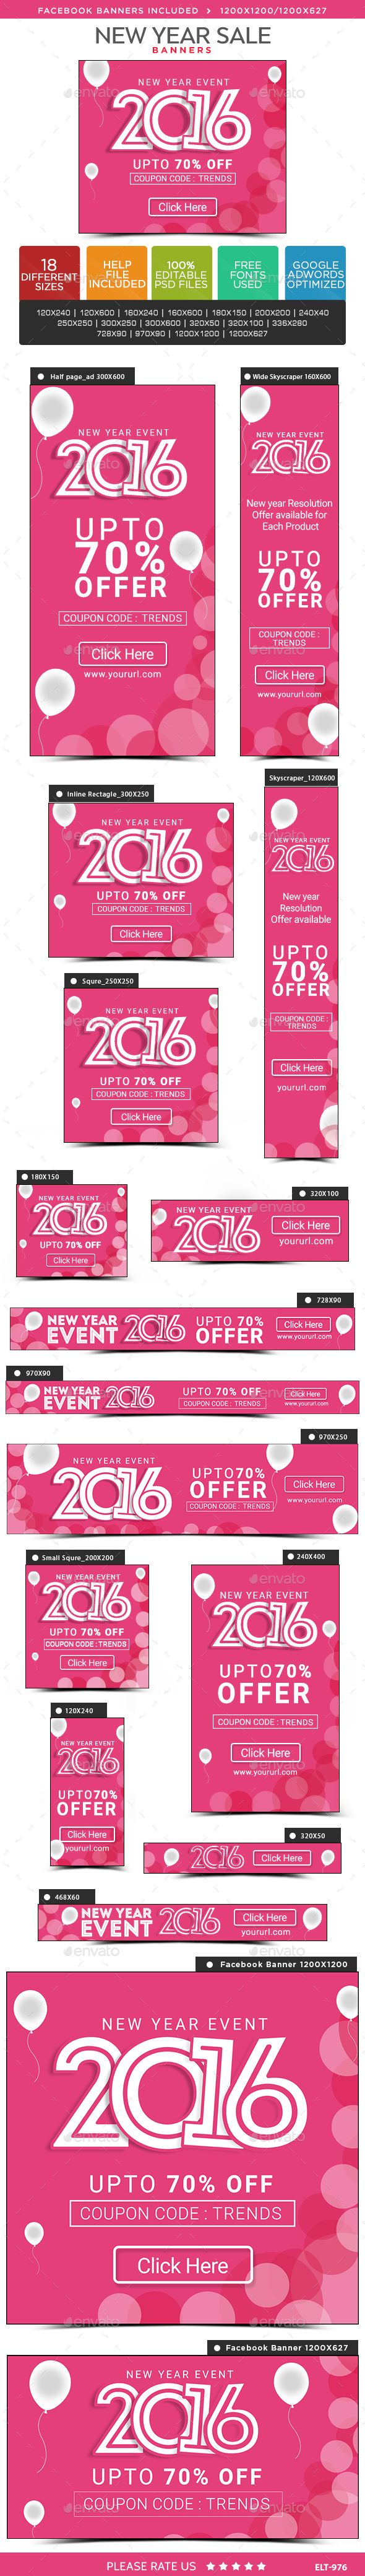 New Year Sale Web Banners Template PSD #design #ad Download: http://graphicriver.net/item/new-year-sale-banners/14154114?ref=ksioks